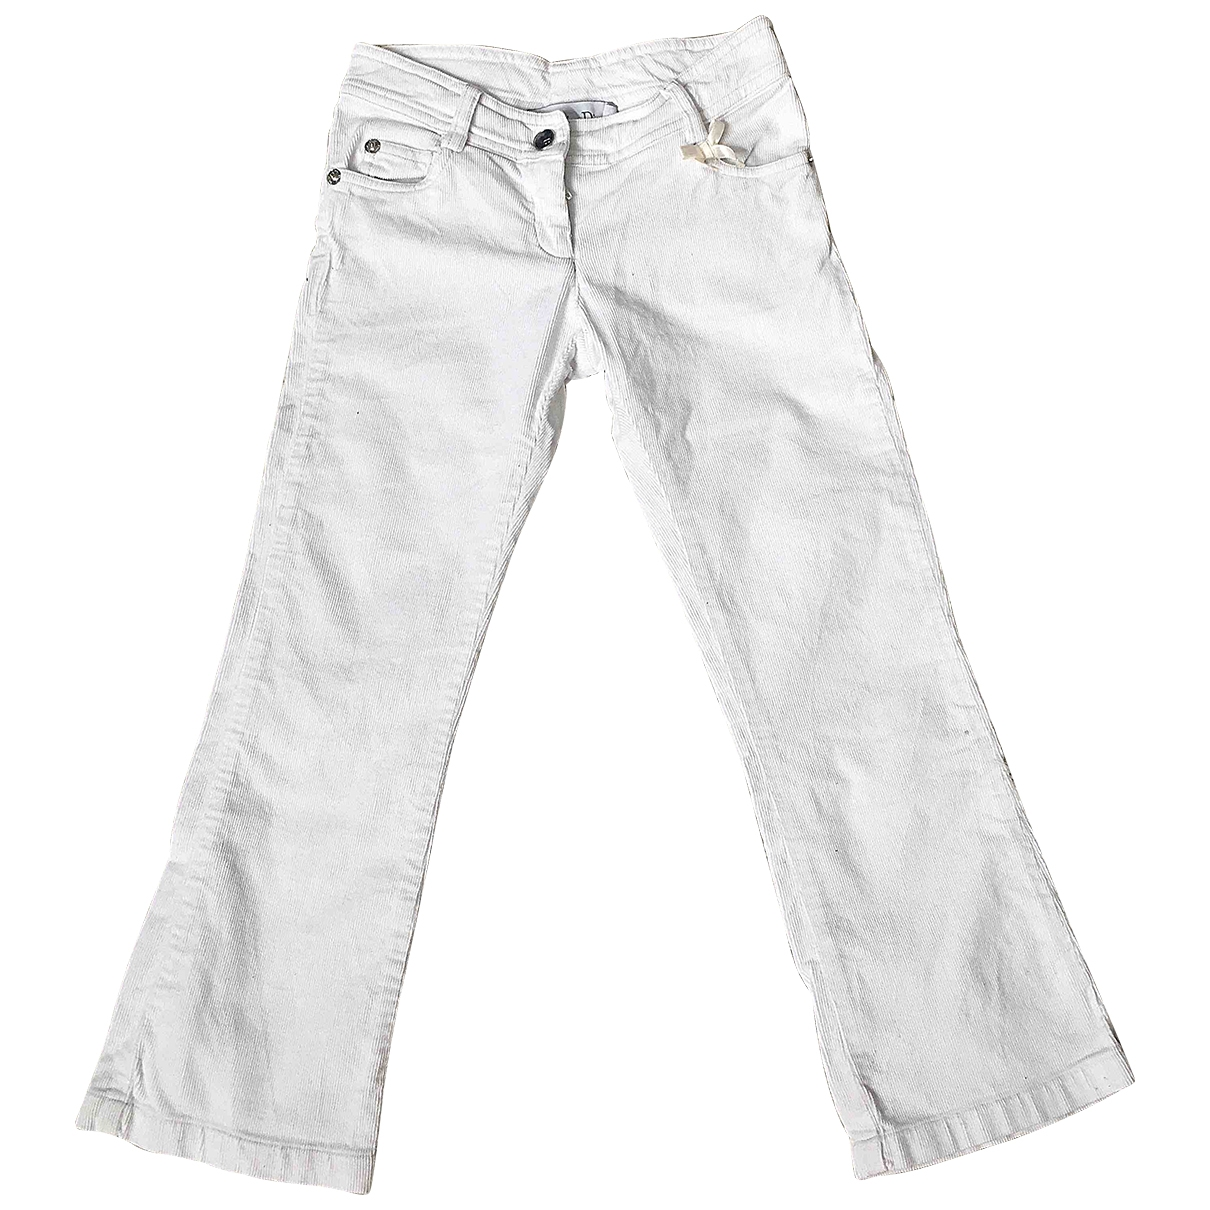 Dior \N White Cotton Trousers for Kids 6 years - up to 114cm FR